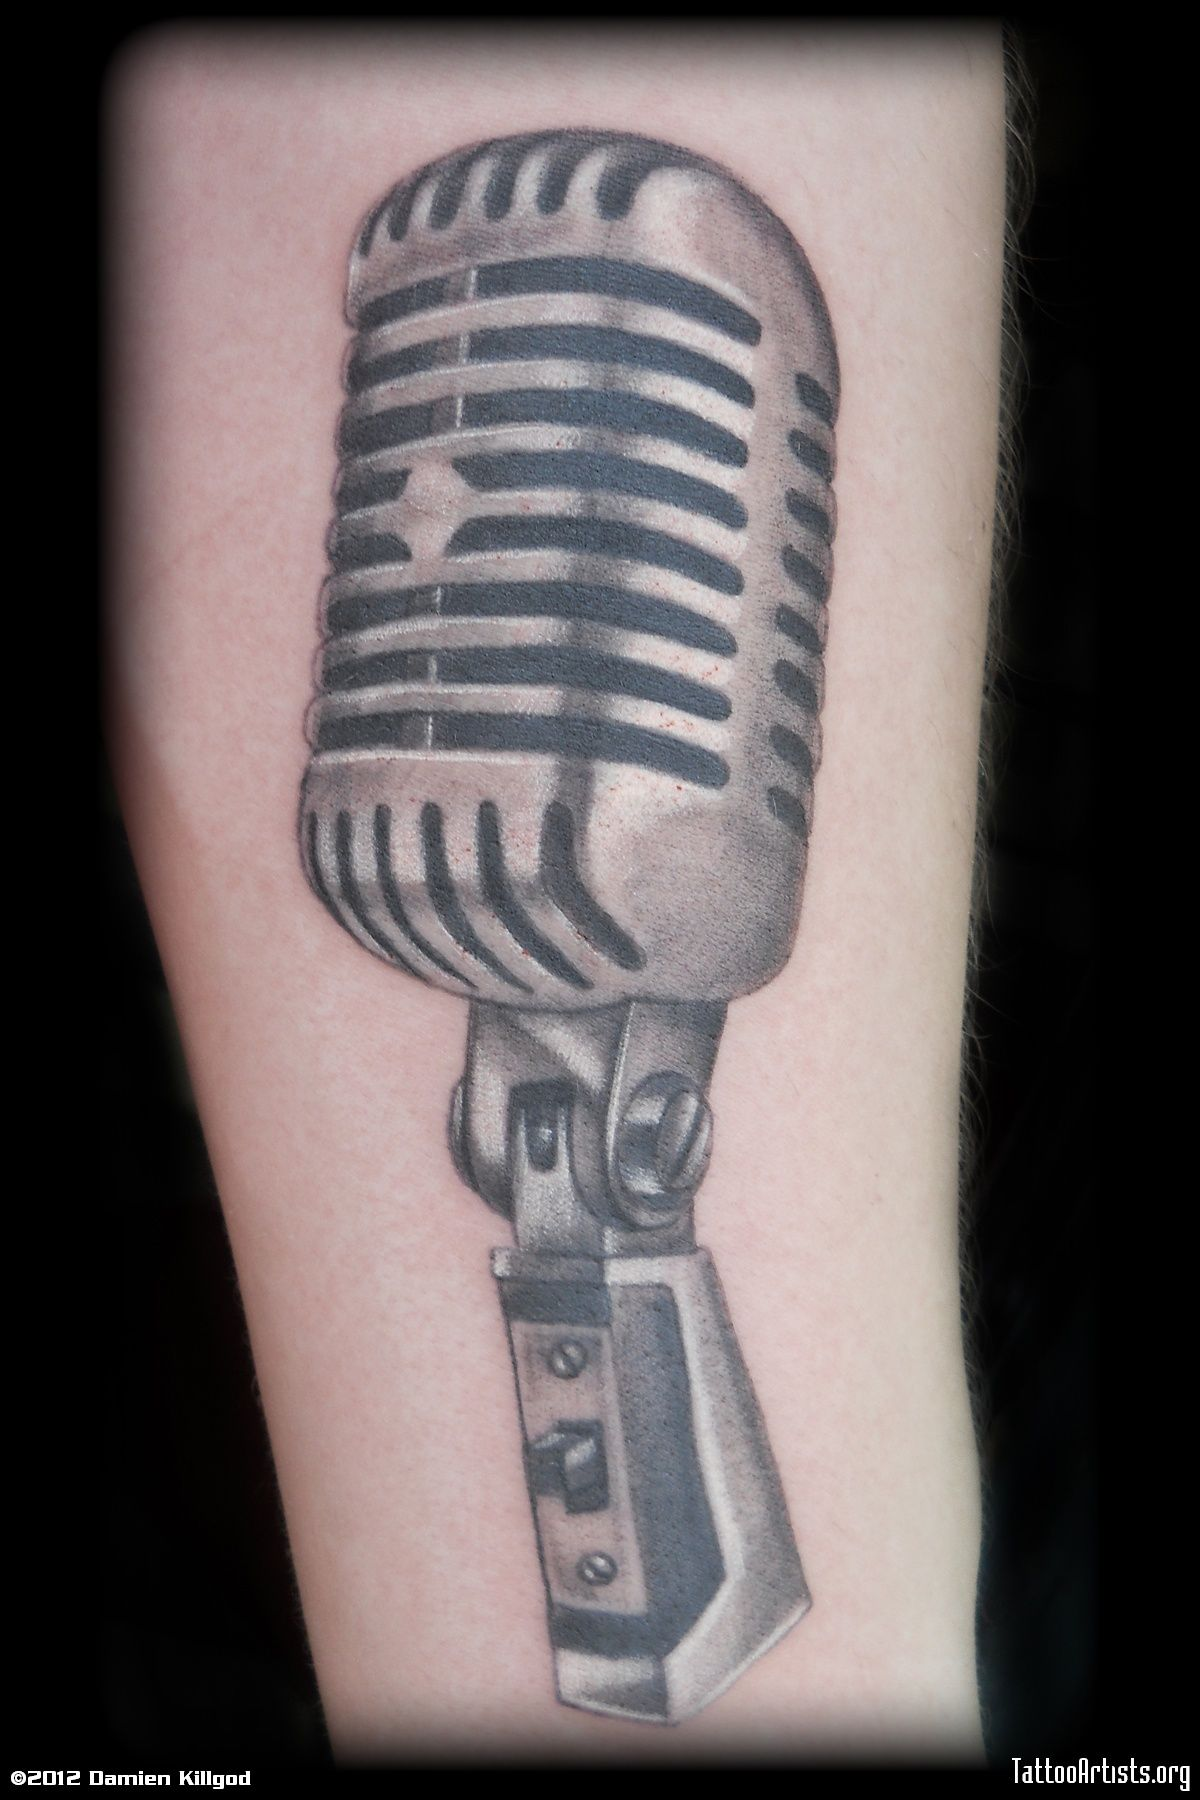 Microphone Tattoo Pesquisa Google Microphone Tattoo Tattoos Old School Microphone